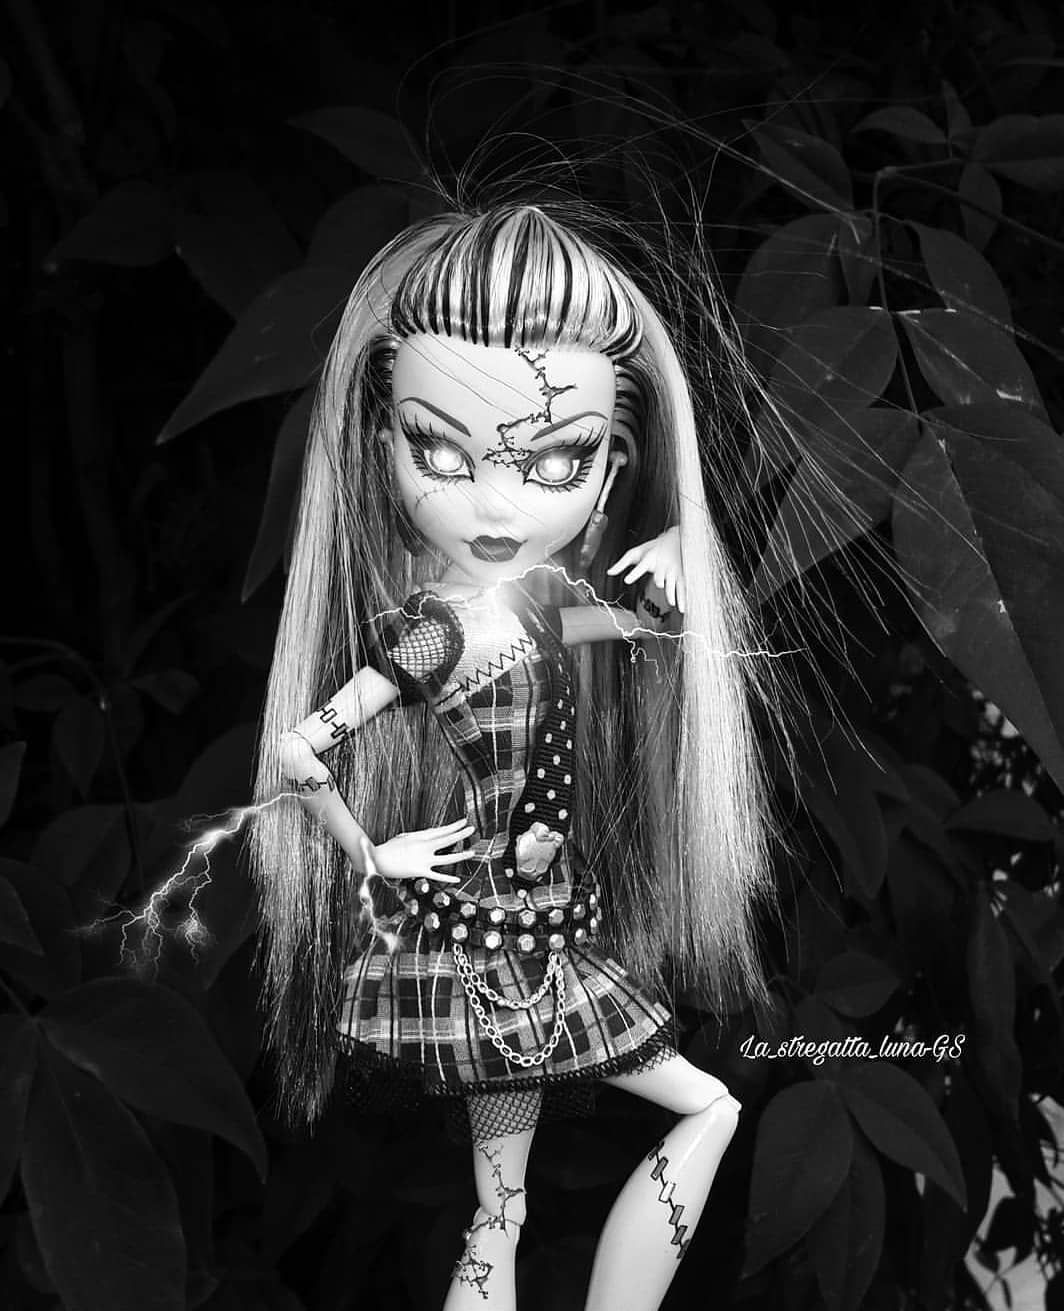 pictures of monster high dolls image result for wednesday addams monster high doll monster high dolls of pictures